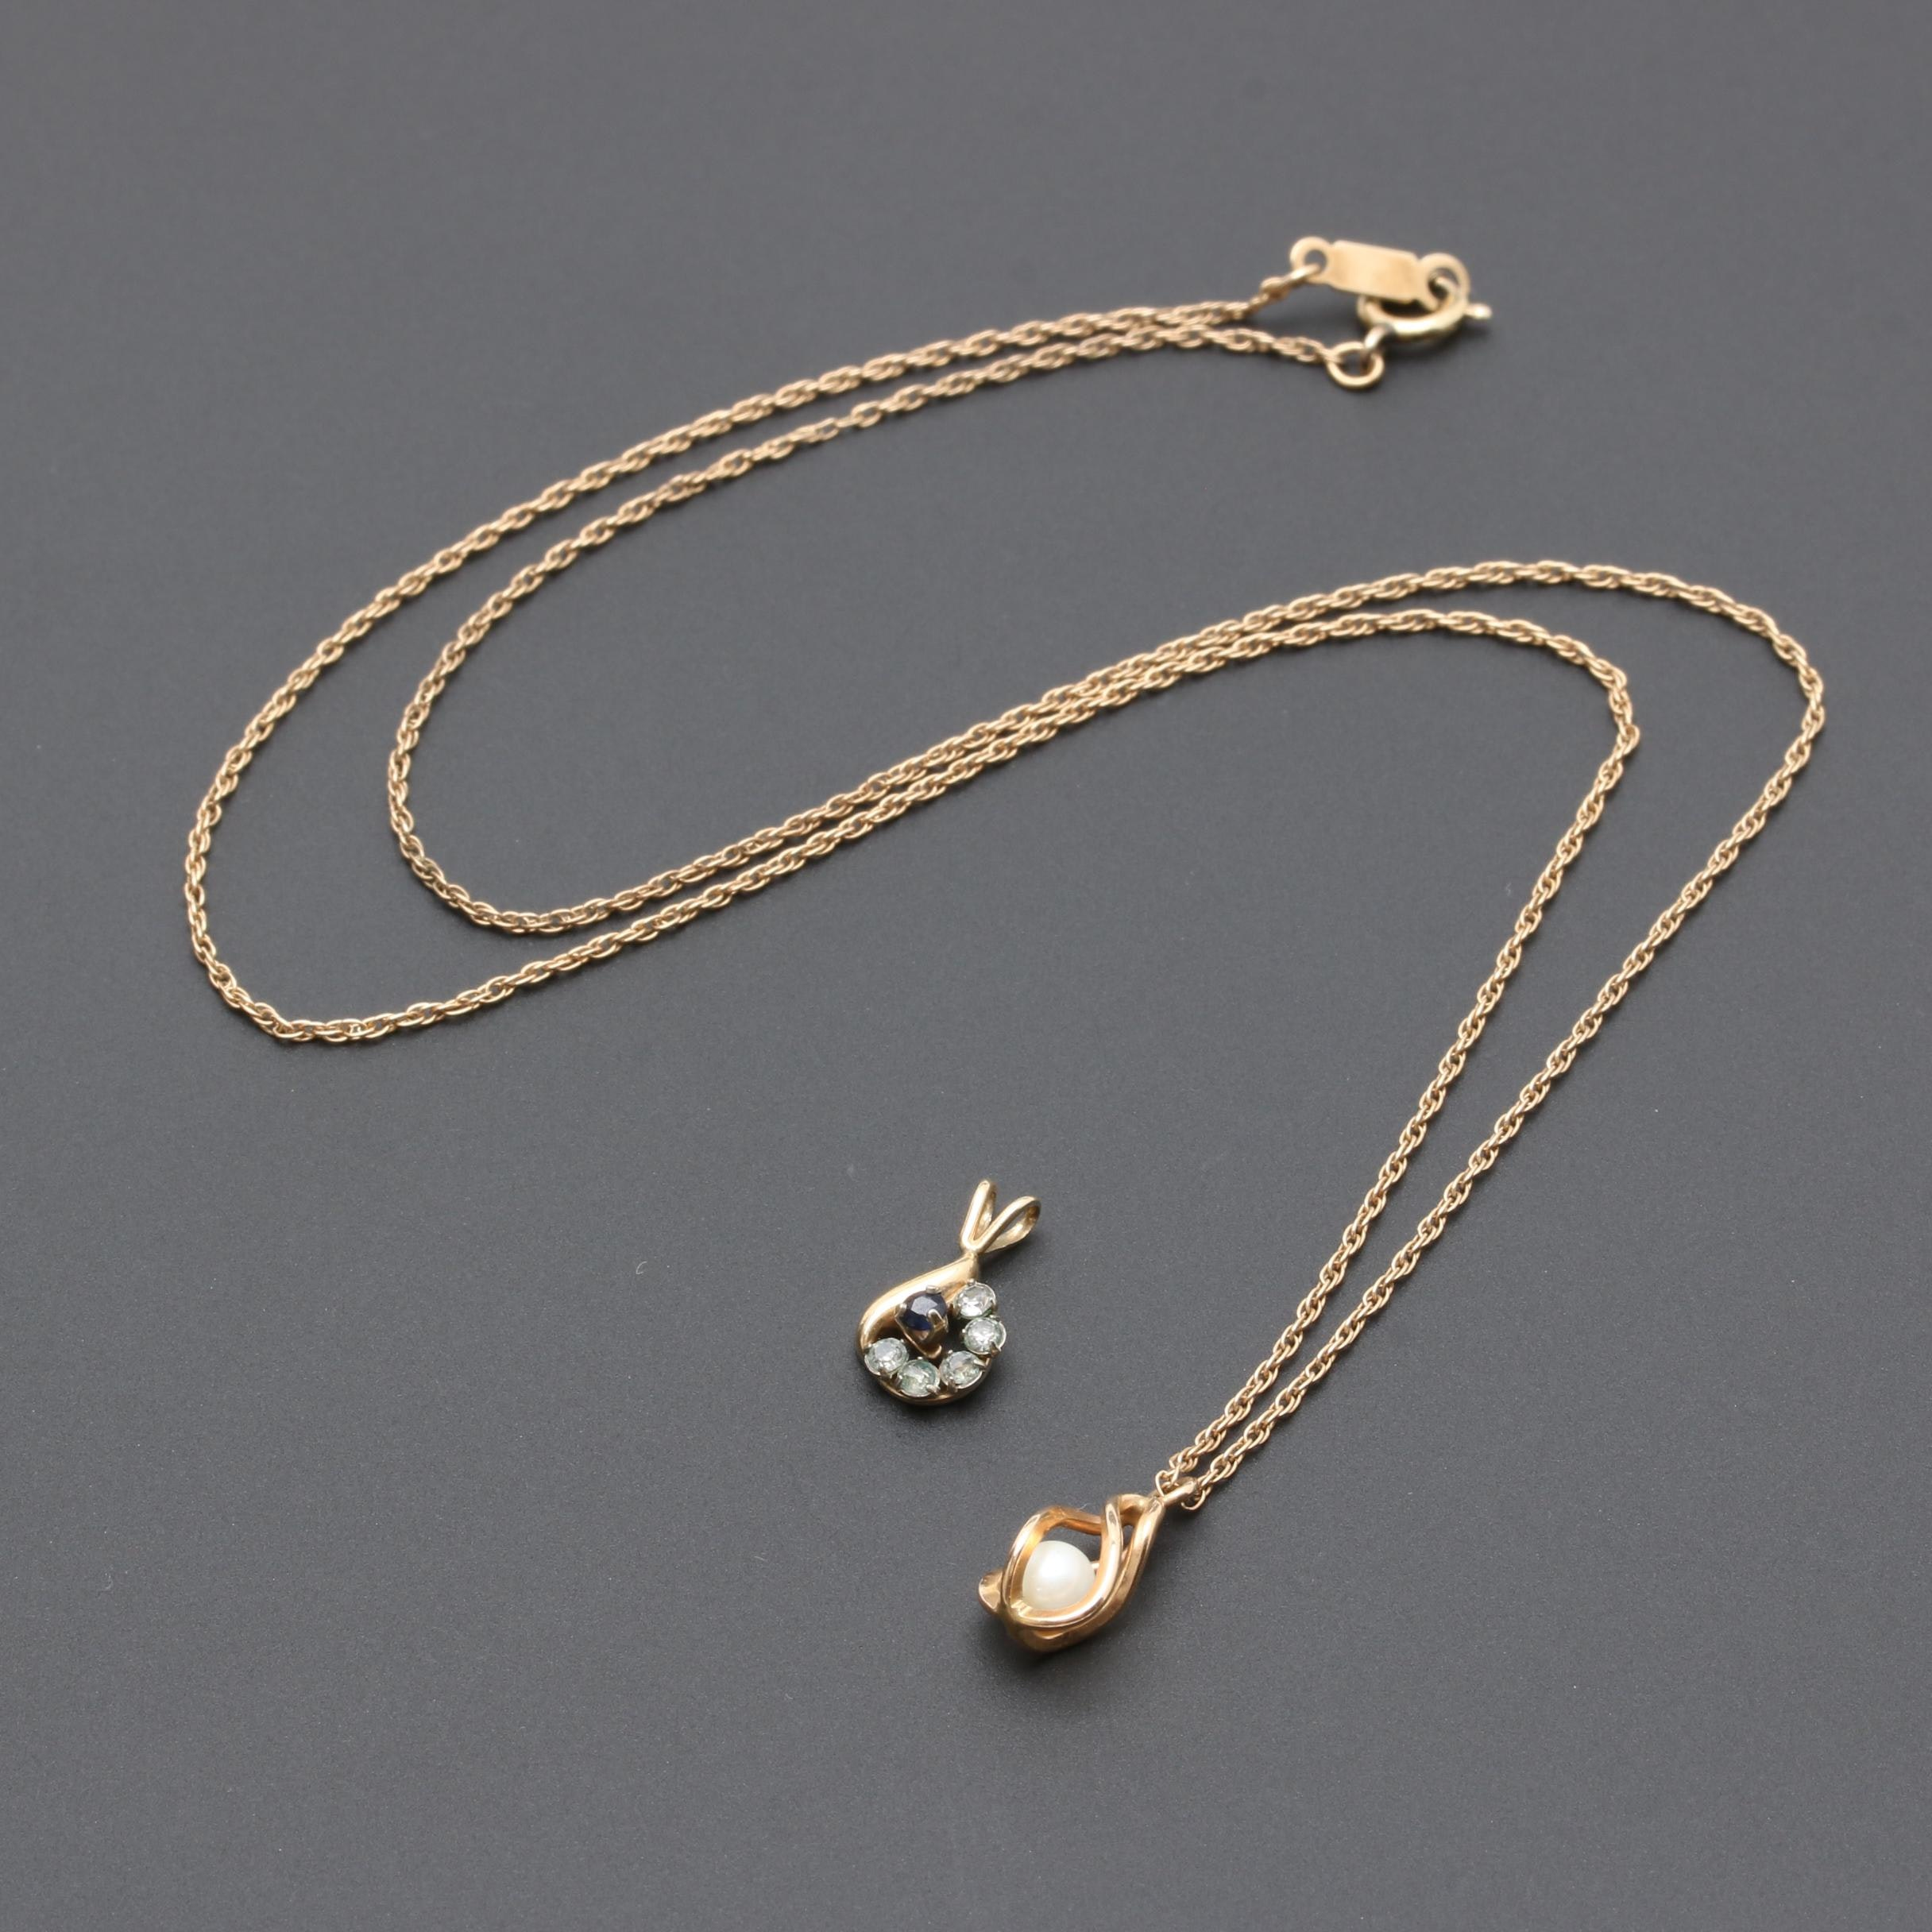 Gold Tone Gemstone Jewelry Including Cultured Pearl and Krementz